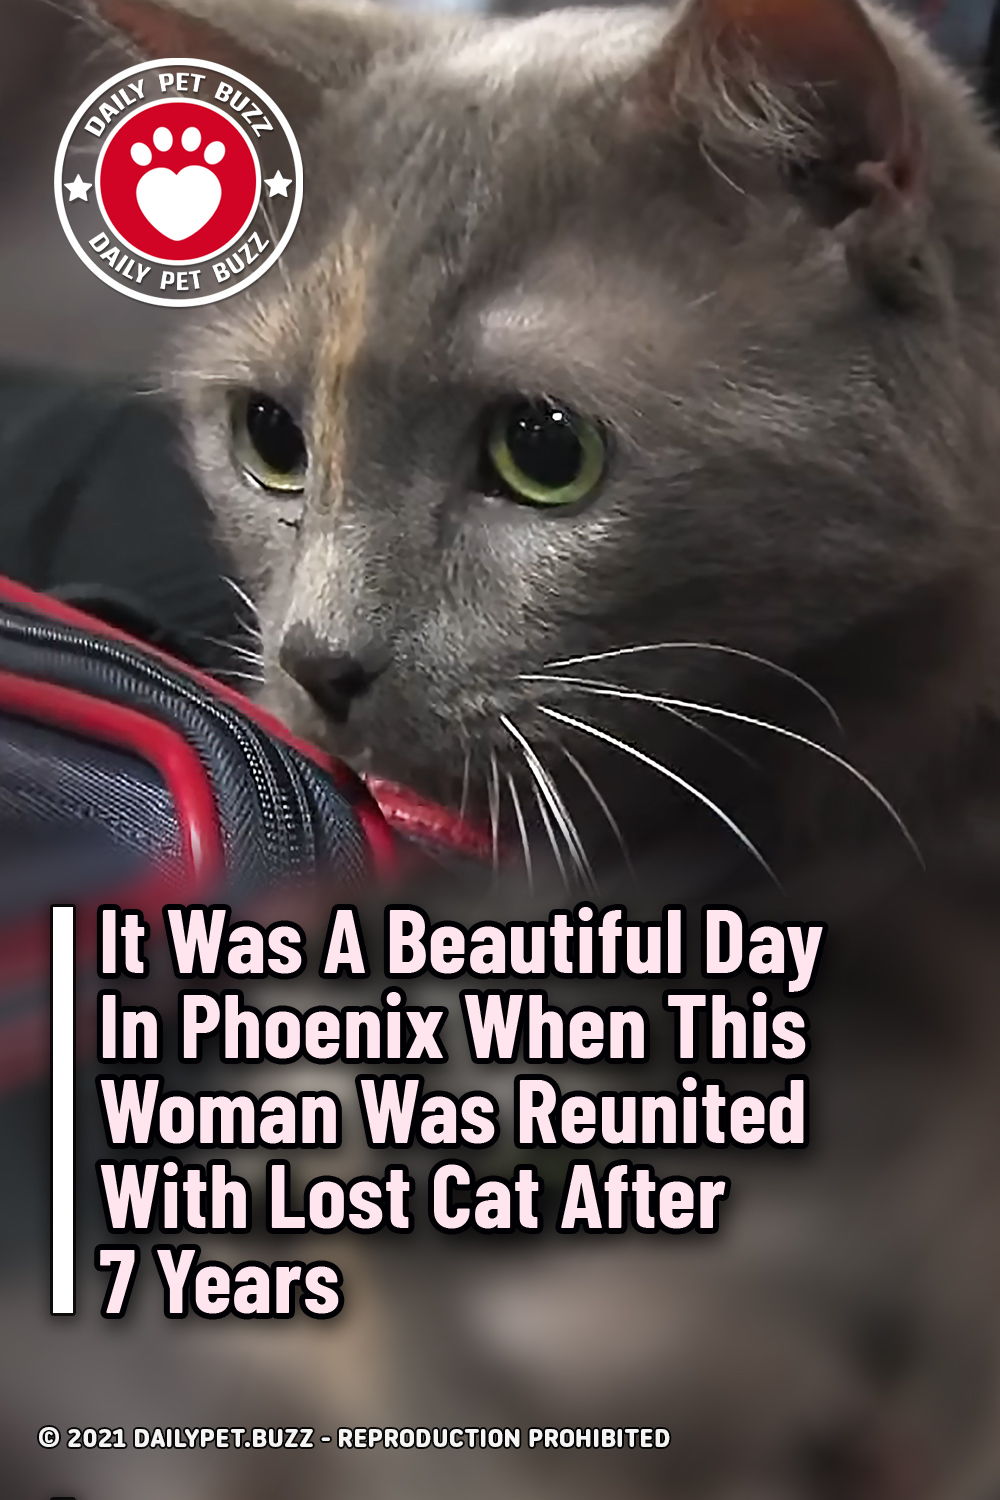 It Was A Beautiful Day In Phoenix When This Woman Was Reunited With Lost Cat After 7 Years